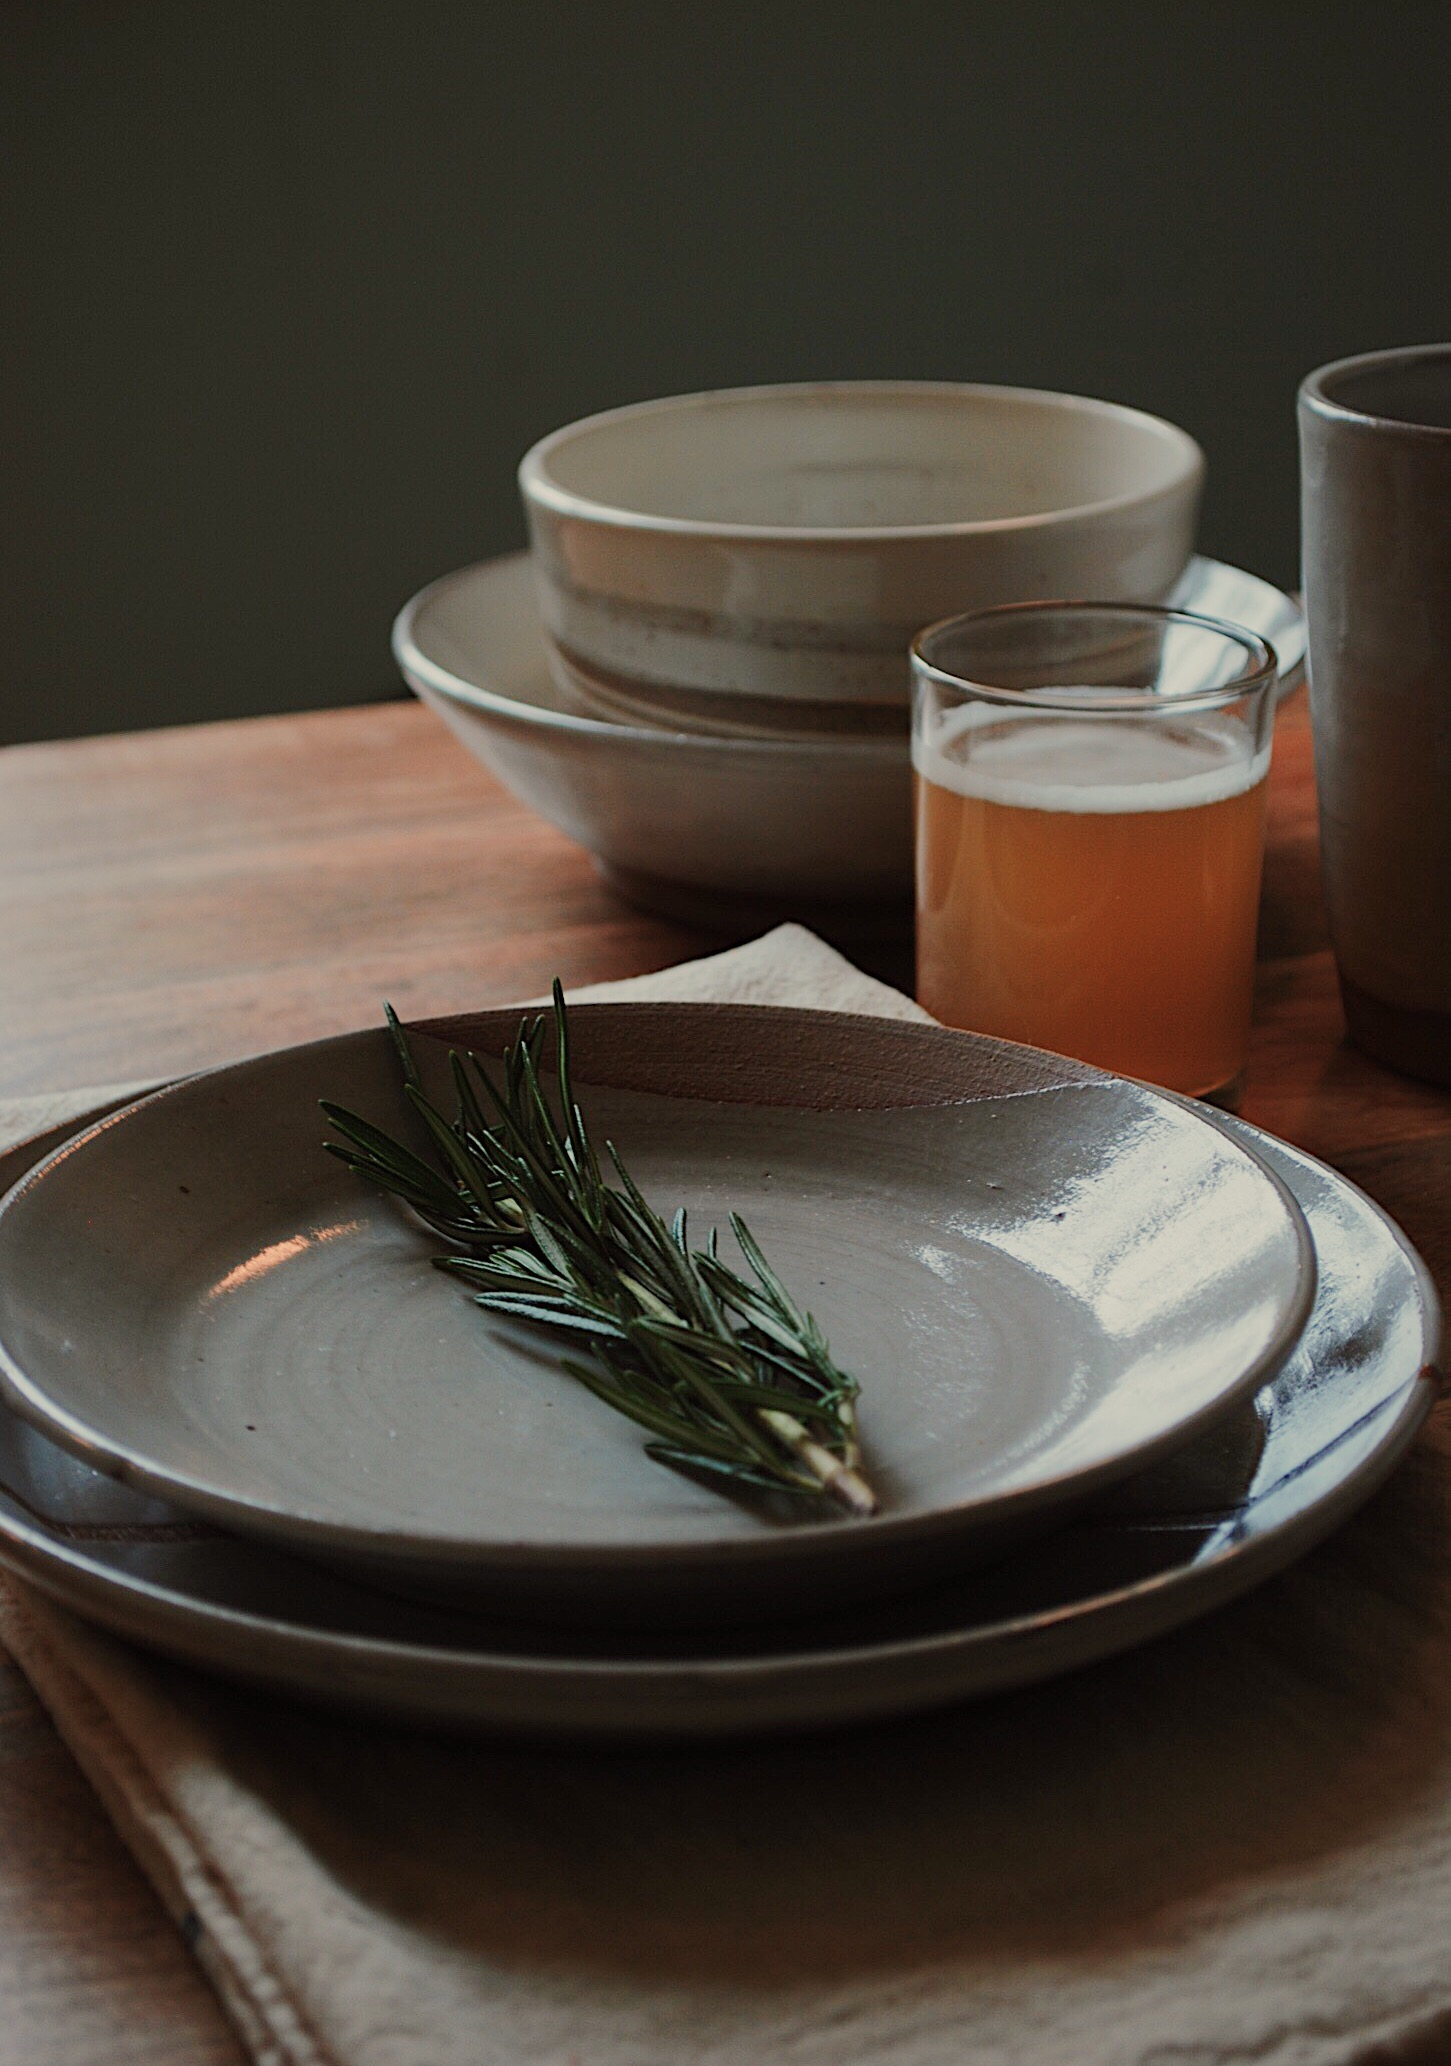 Photo by Ellen Buley - A custom set of plates and misc. dishes from Doghouse Pottery